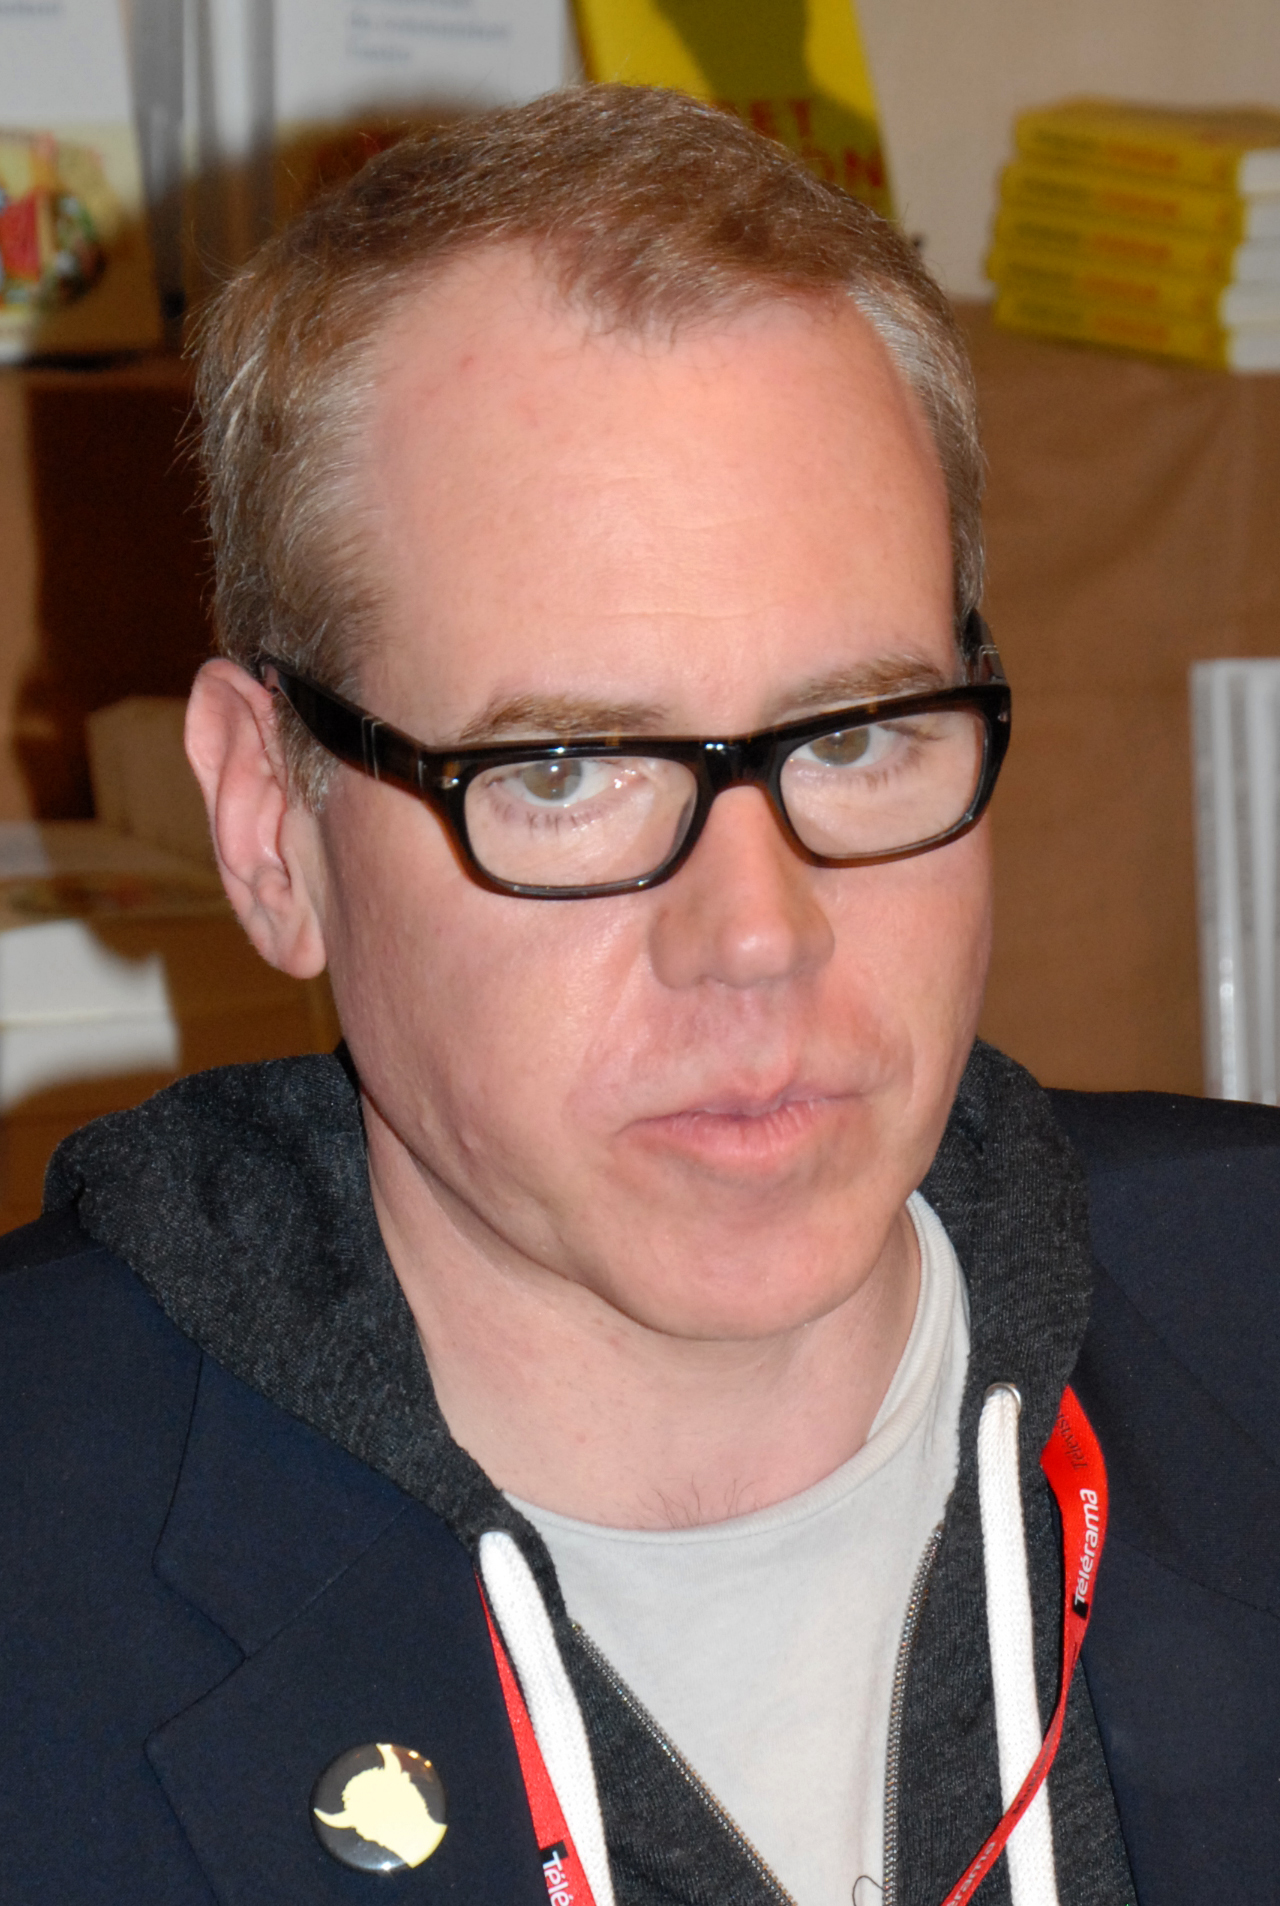 bret easton ellis directorbret easton ellis podcast, bret easton ellis donna tartt, bret easton ellis less than zero, bret easton ellis shop, bret easton ellis son, bret easton ellis book, bret easton ellis music, bret easton ellis larry king, bret easton ellis marilyn manson, bret easton ellis orpheus, bret easton ellis jay mcinerney, bret easton ellis best book, bret easton ellis john carpenter, bret easton ellis - glamorama, bret easton ellis patrick bateman, bret easton ellis criterion, bret easton ellis series, bret easton ellis figaro, bret easton ellis favorite books, bret easton ellis director